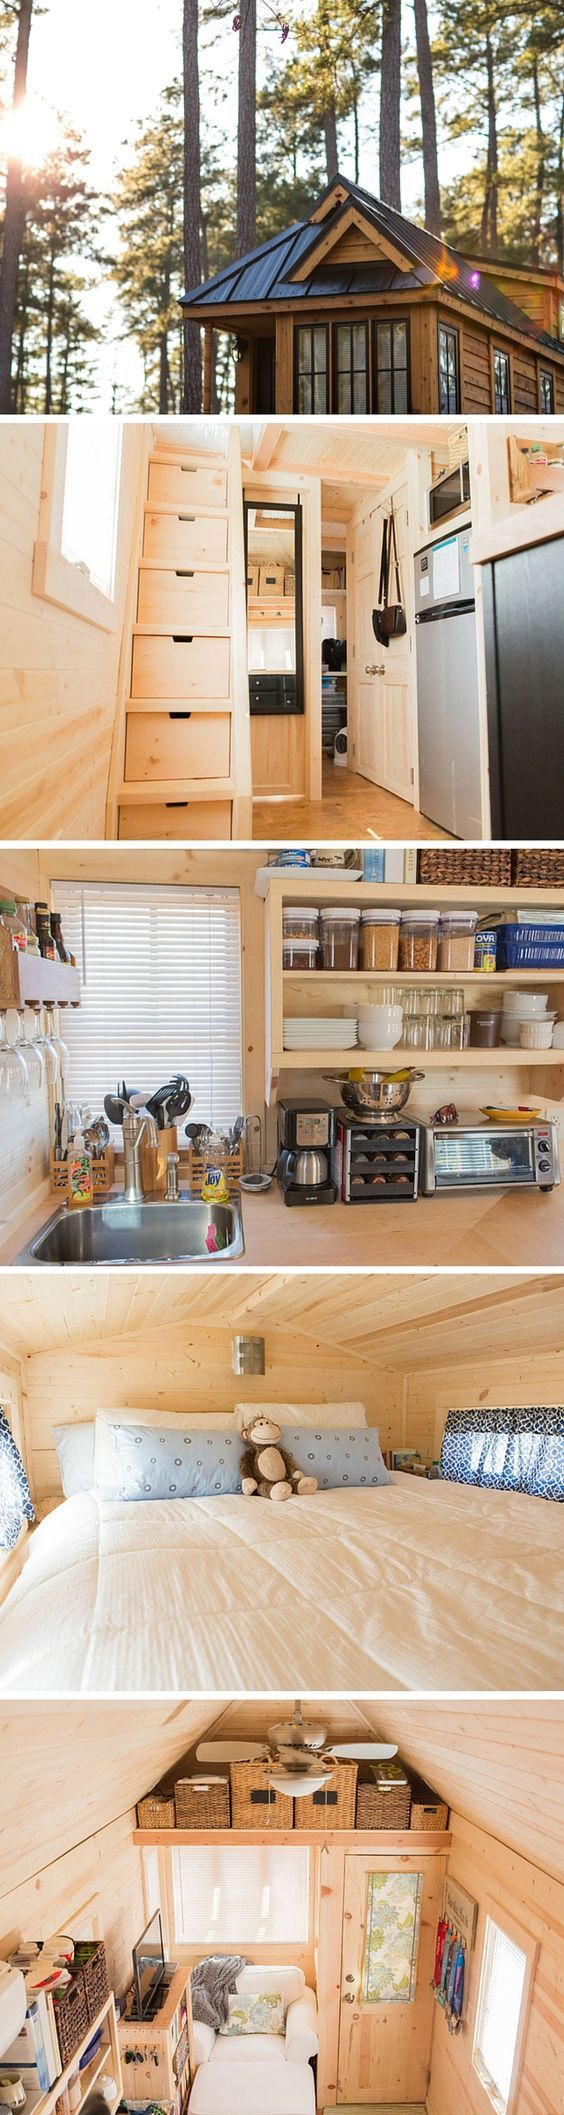 The Cypress Tiny House From Tumbleweed Company Best Of Home Interior In 2017